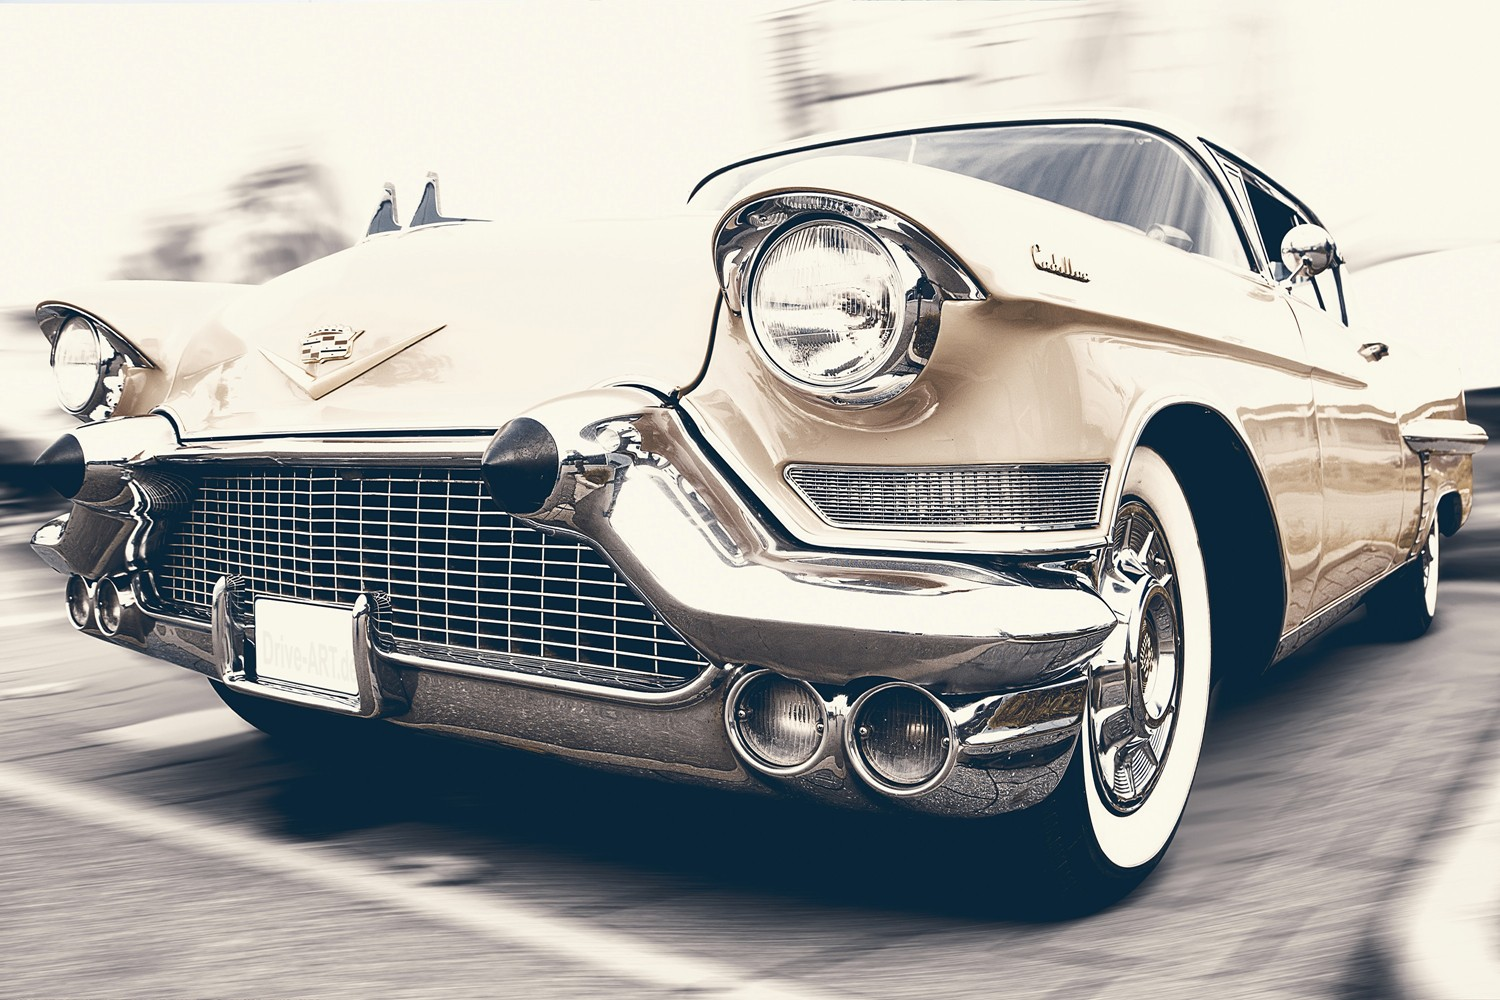 New or Used Take Your Cadillac to Milito's for Expert Service Right in Lincoln Park, Chicago, IL 60614